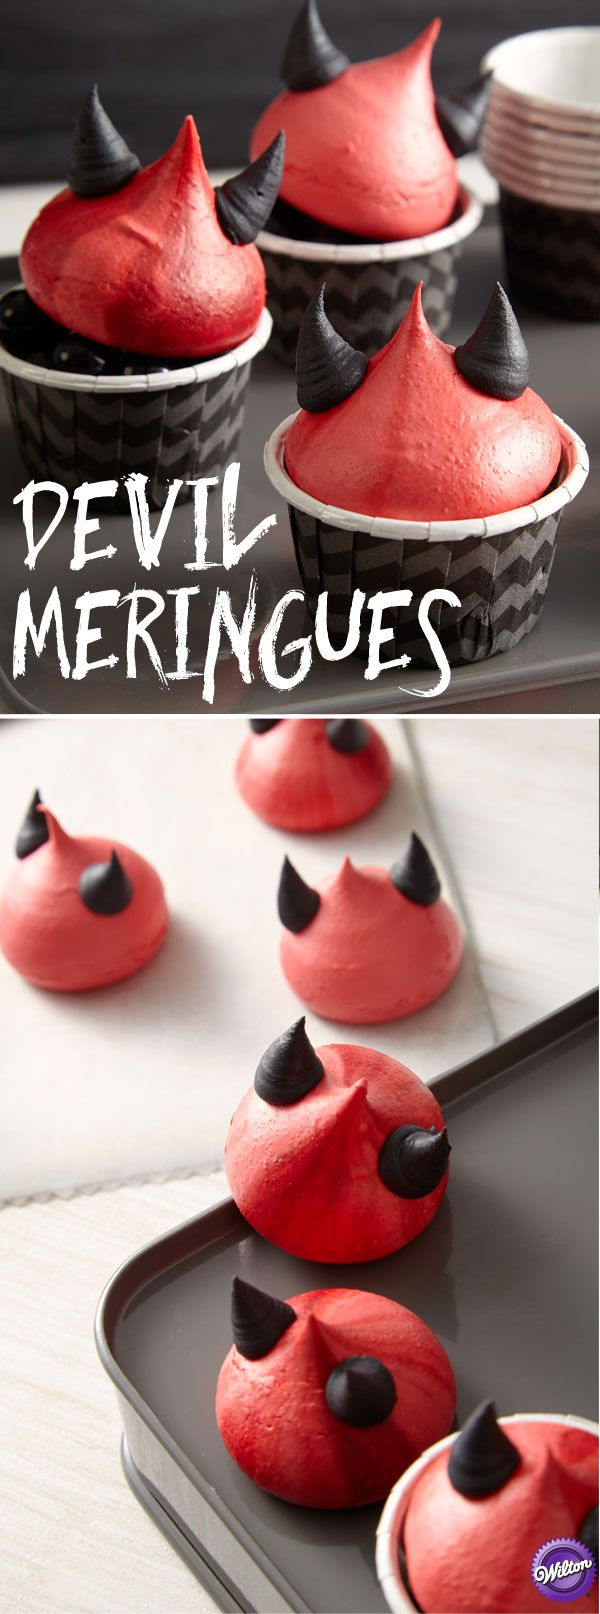 Devilishly clever cookies complete with horns give any Halloween celebration a slightly mischievous edge.